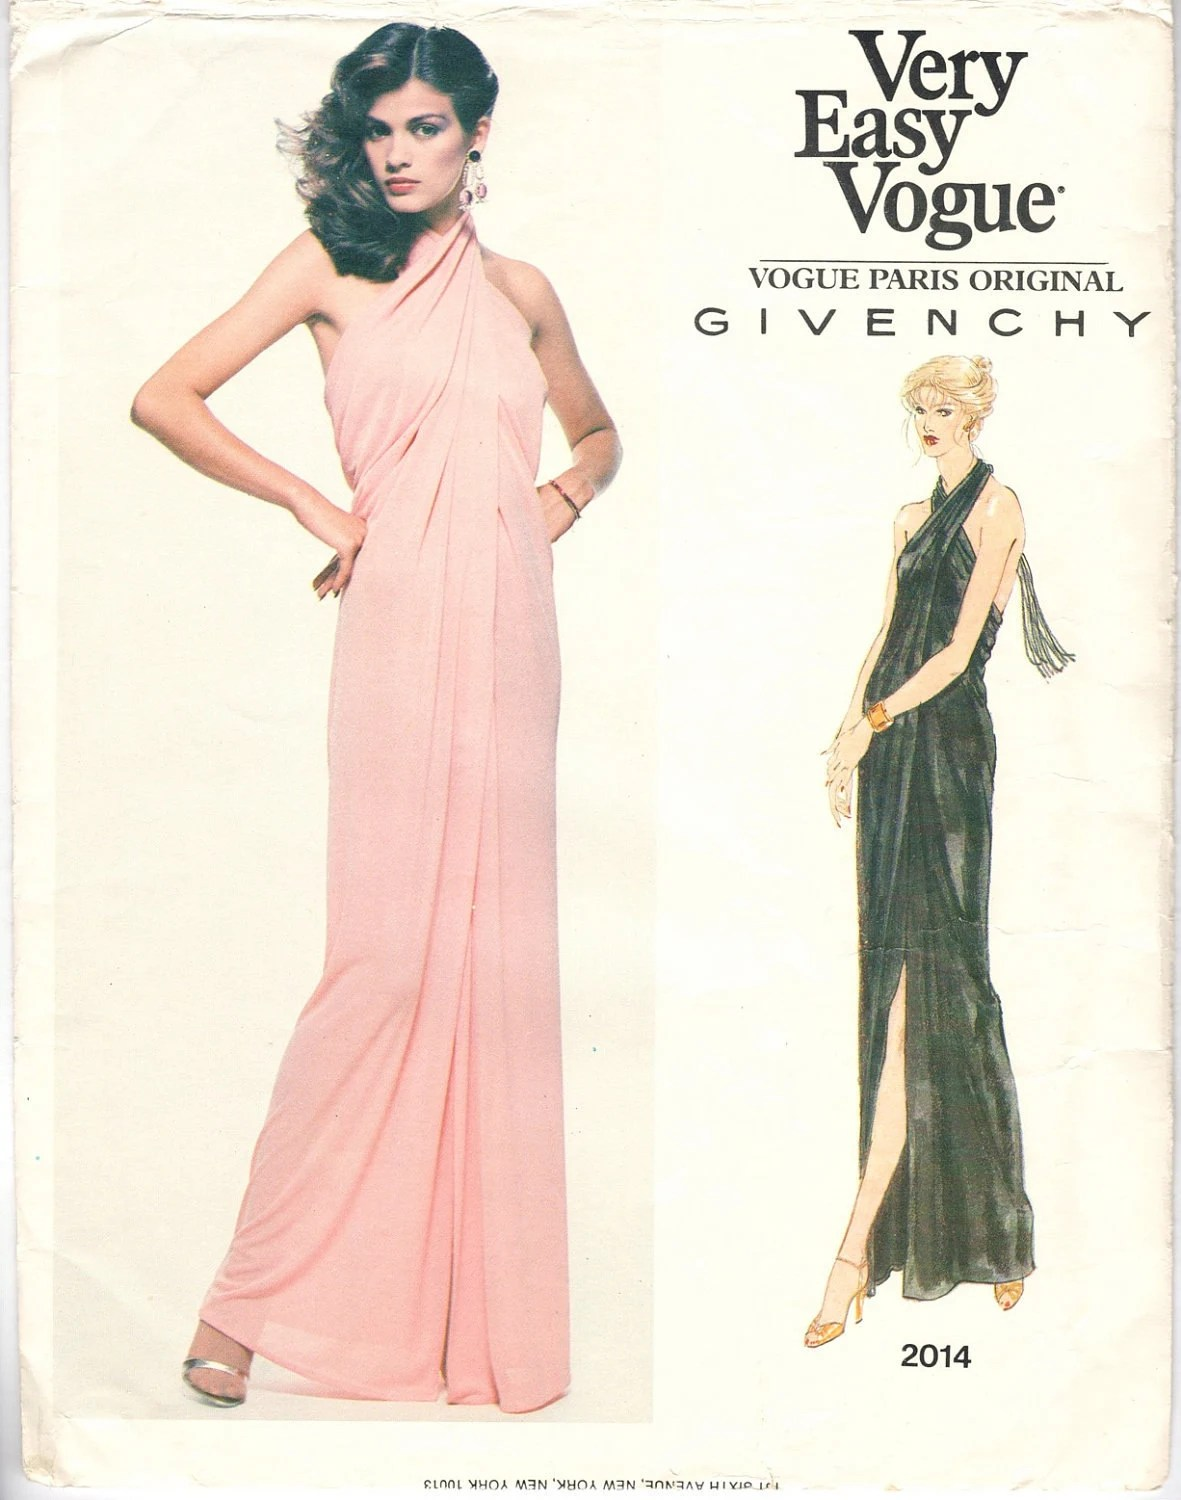 Gia Carangi on the cover of Vogue 2014 by Givenchy (1970s)